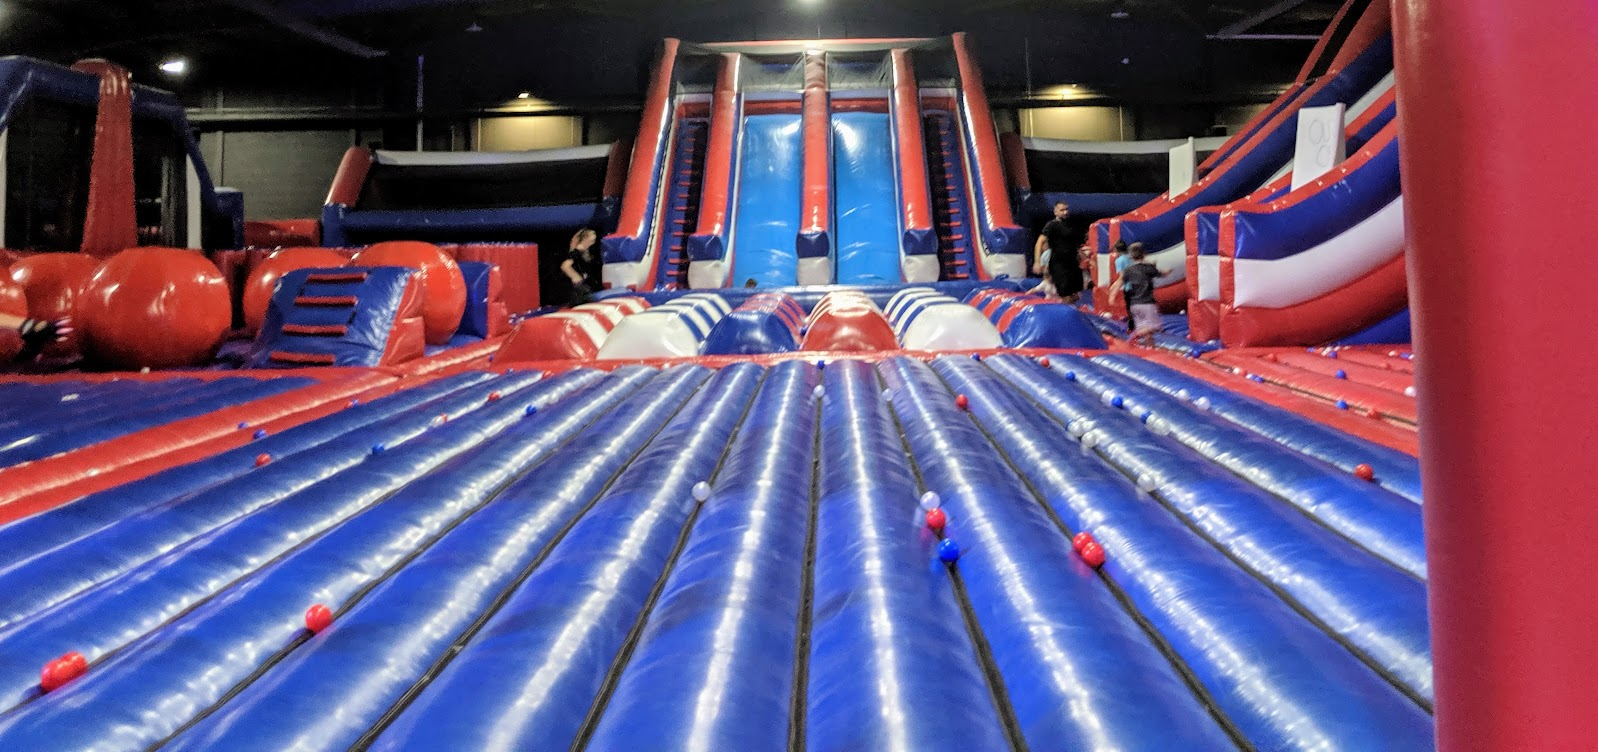 Ninja Warrior Adventure Park Wigan Review  - inflatable park